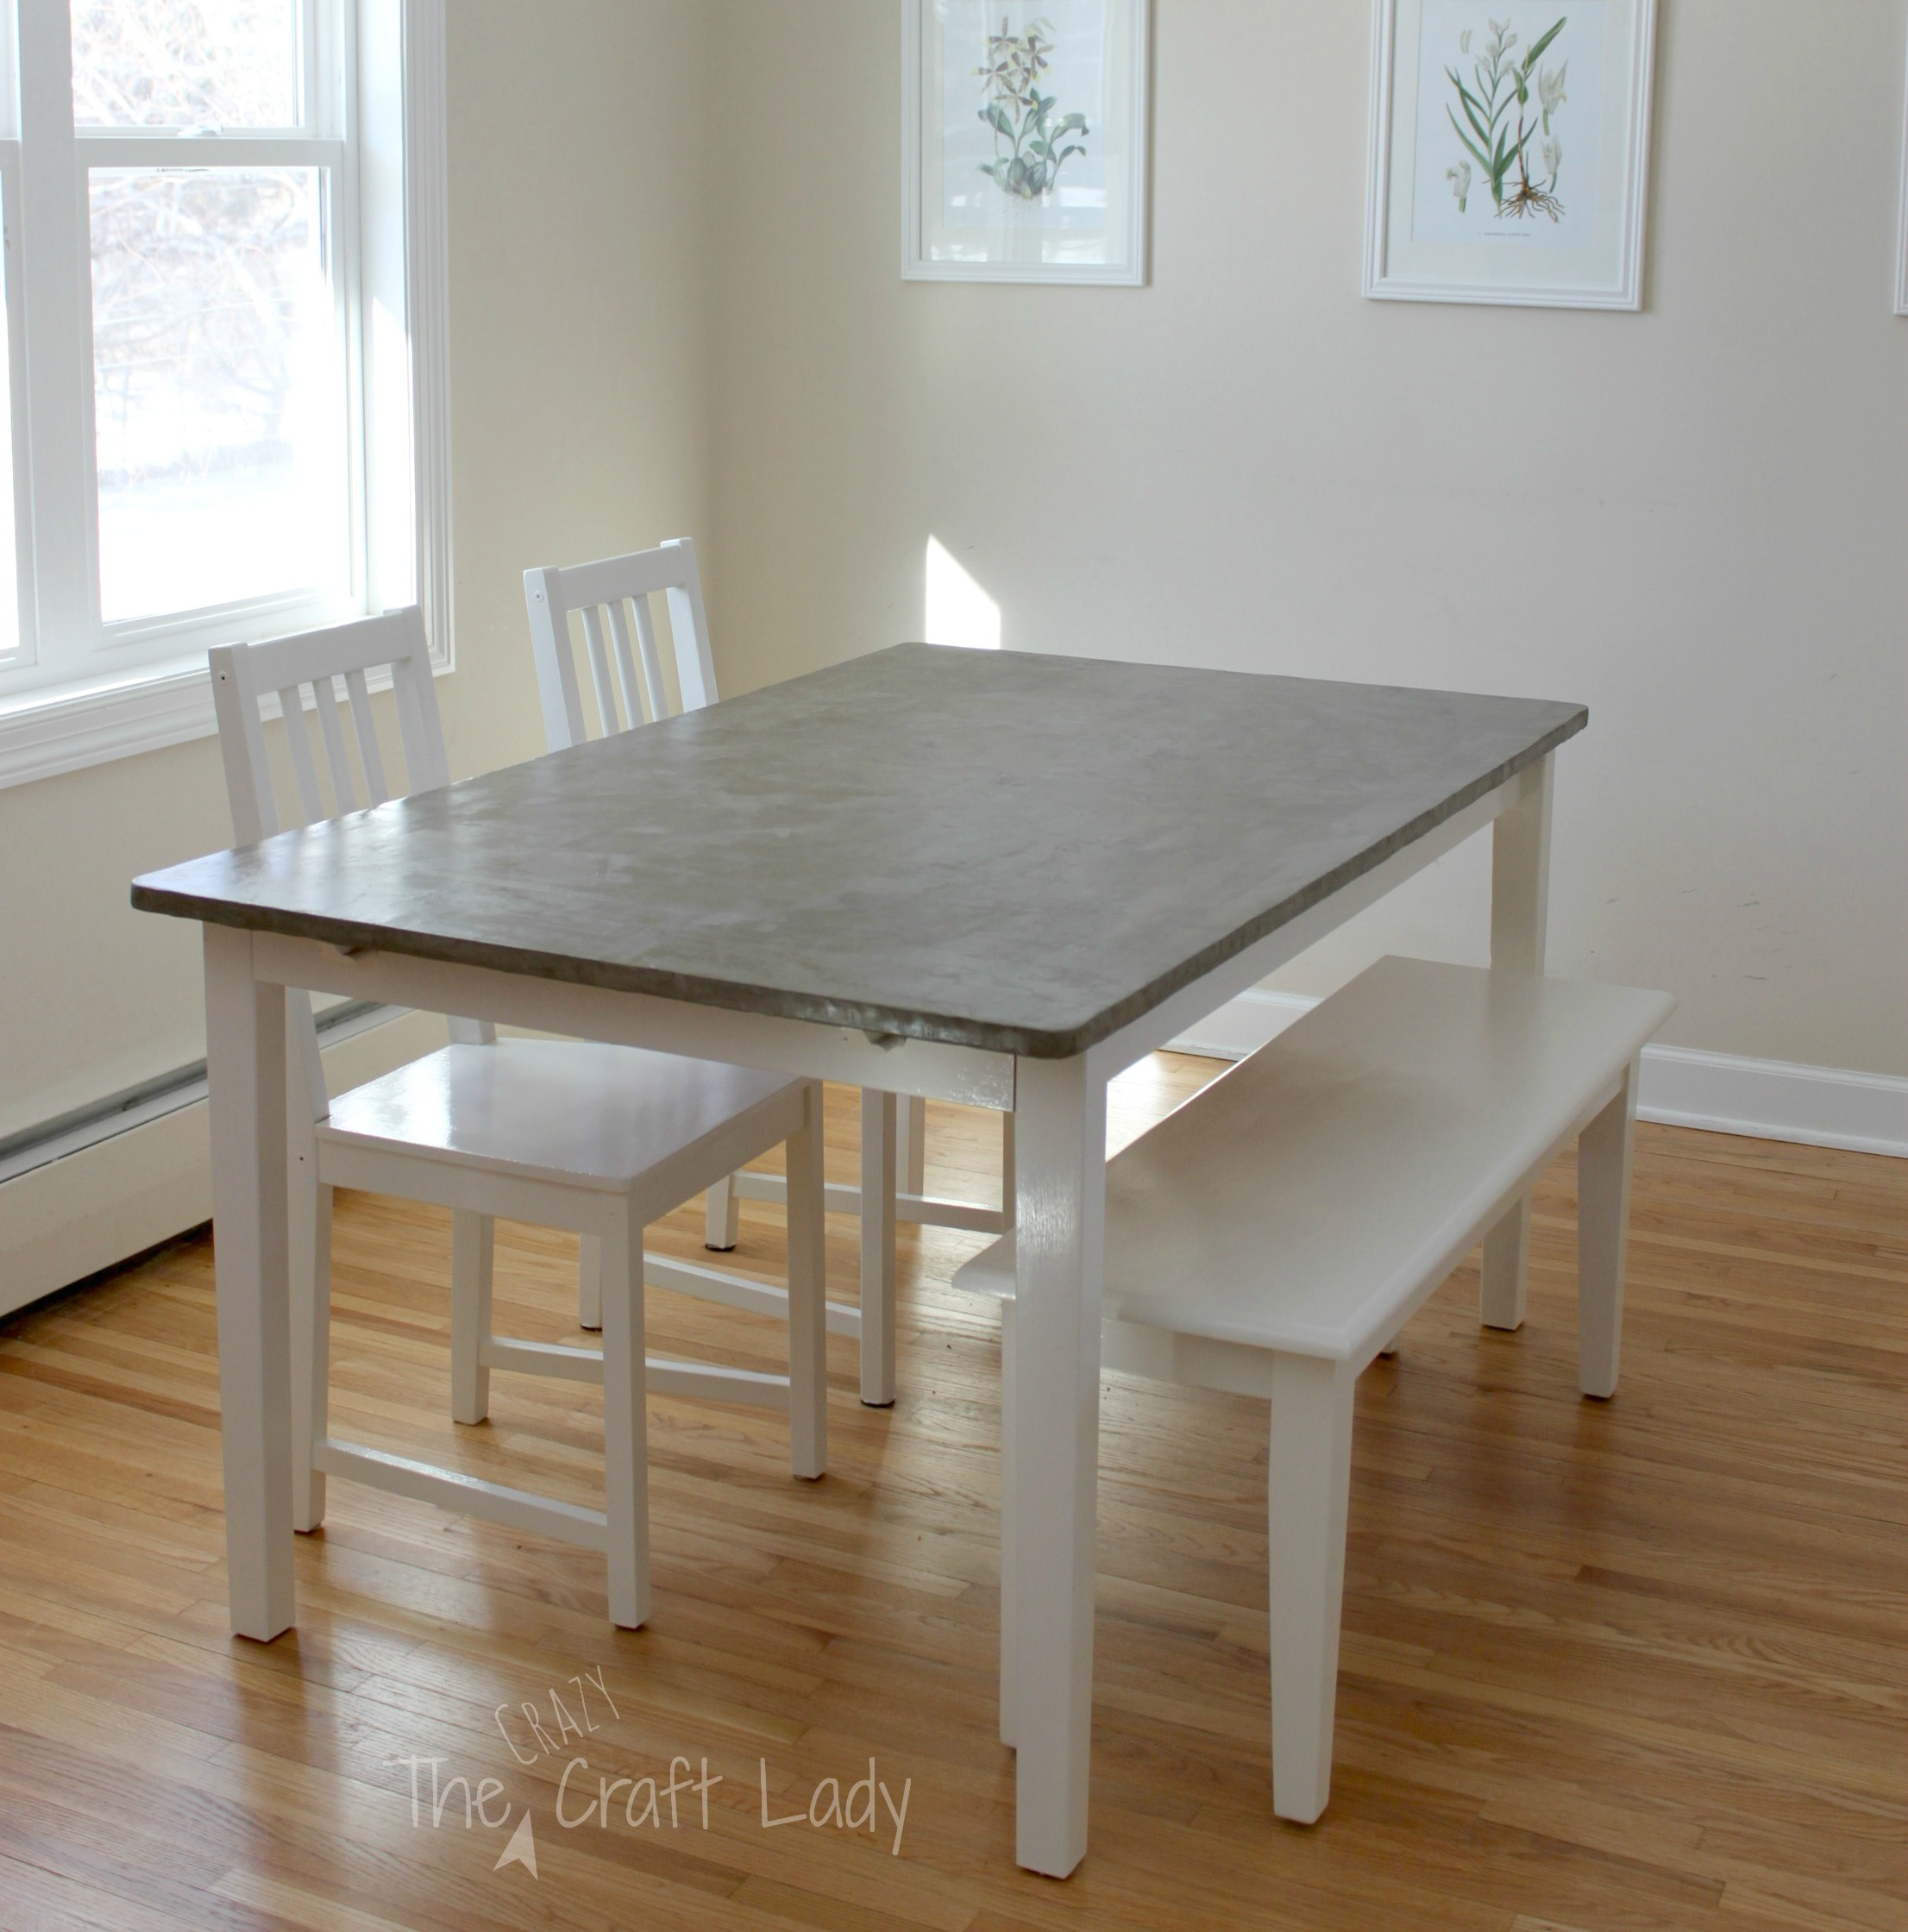 Diy dining table top large and beautiful photos to select